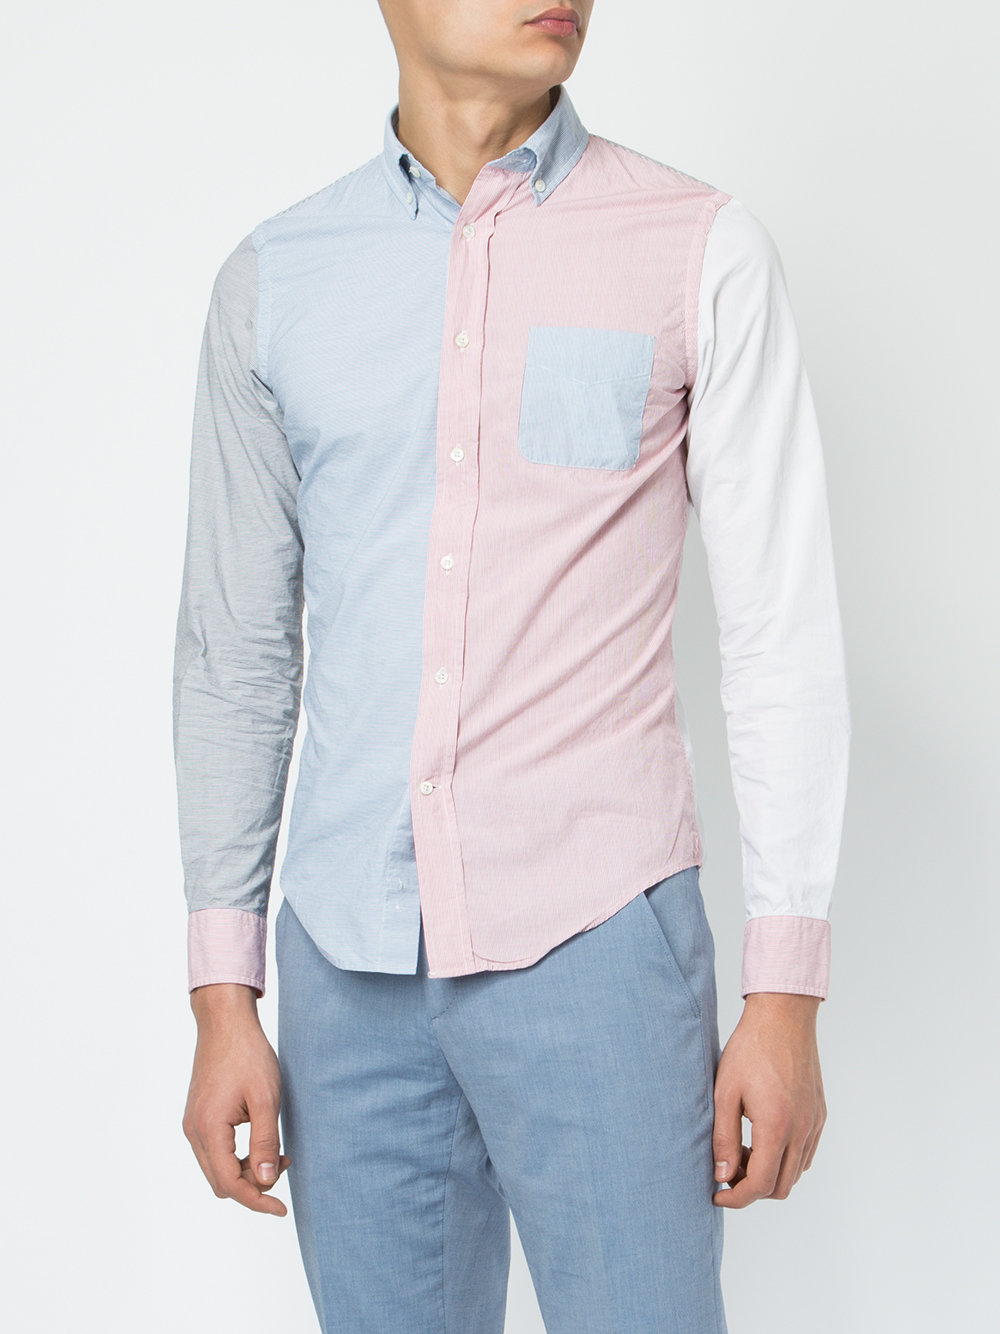 color-block shirt